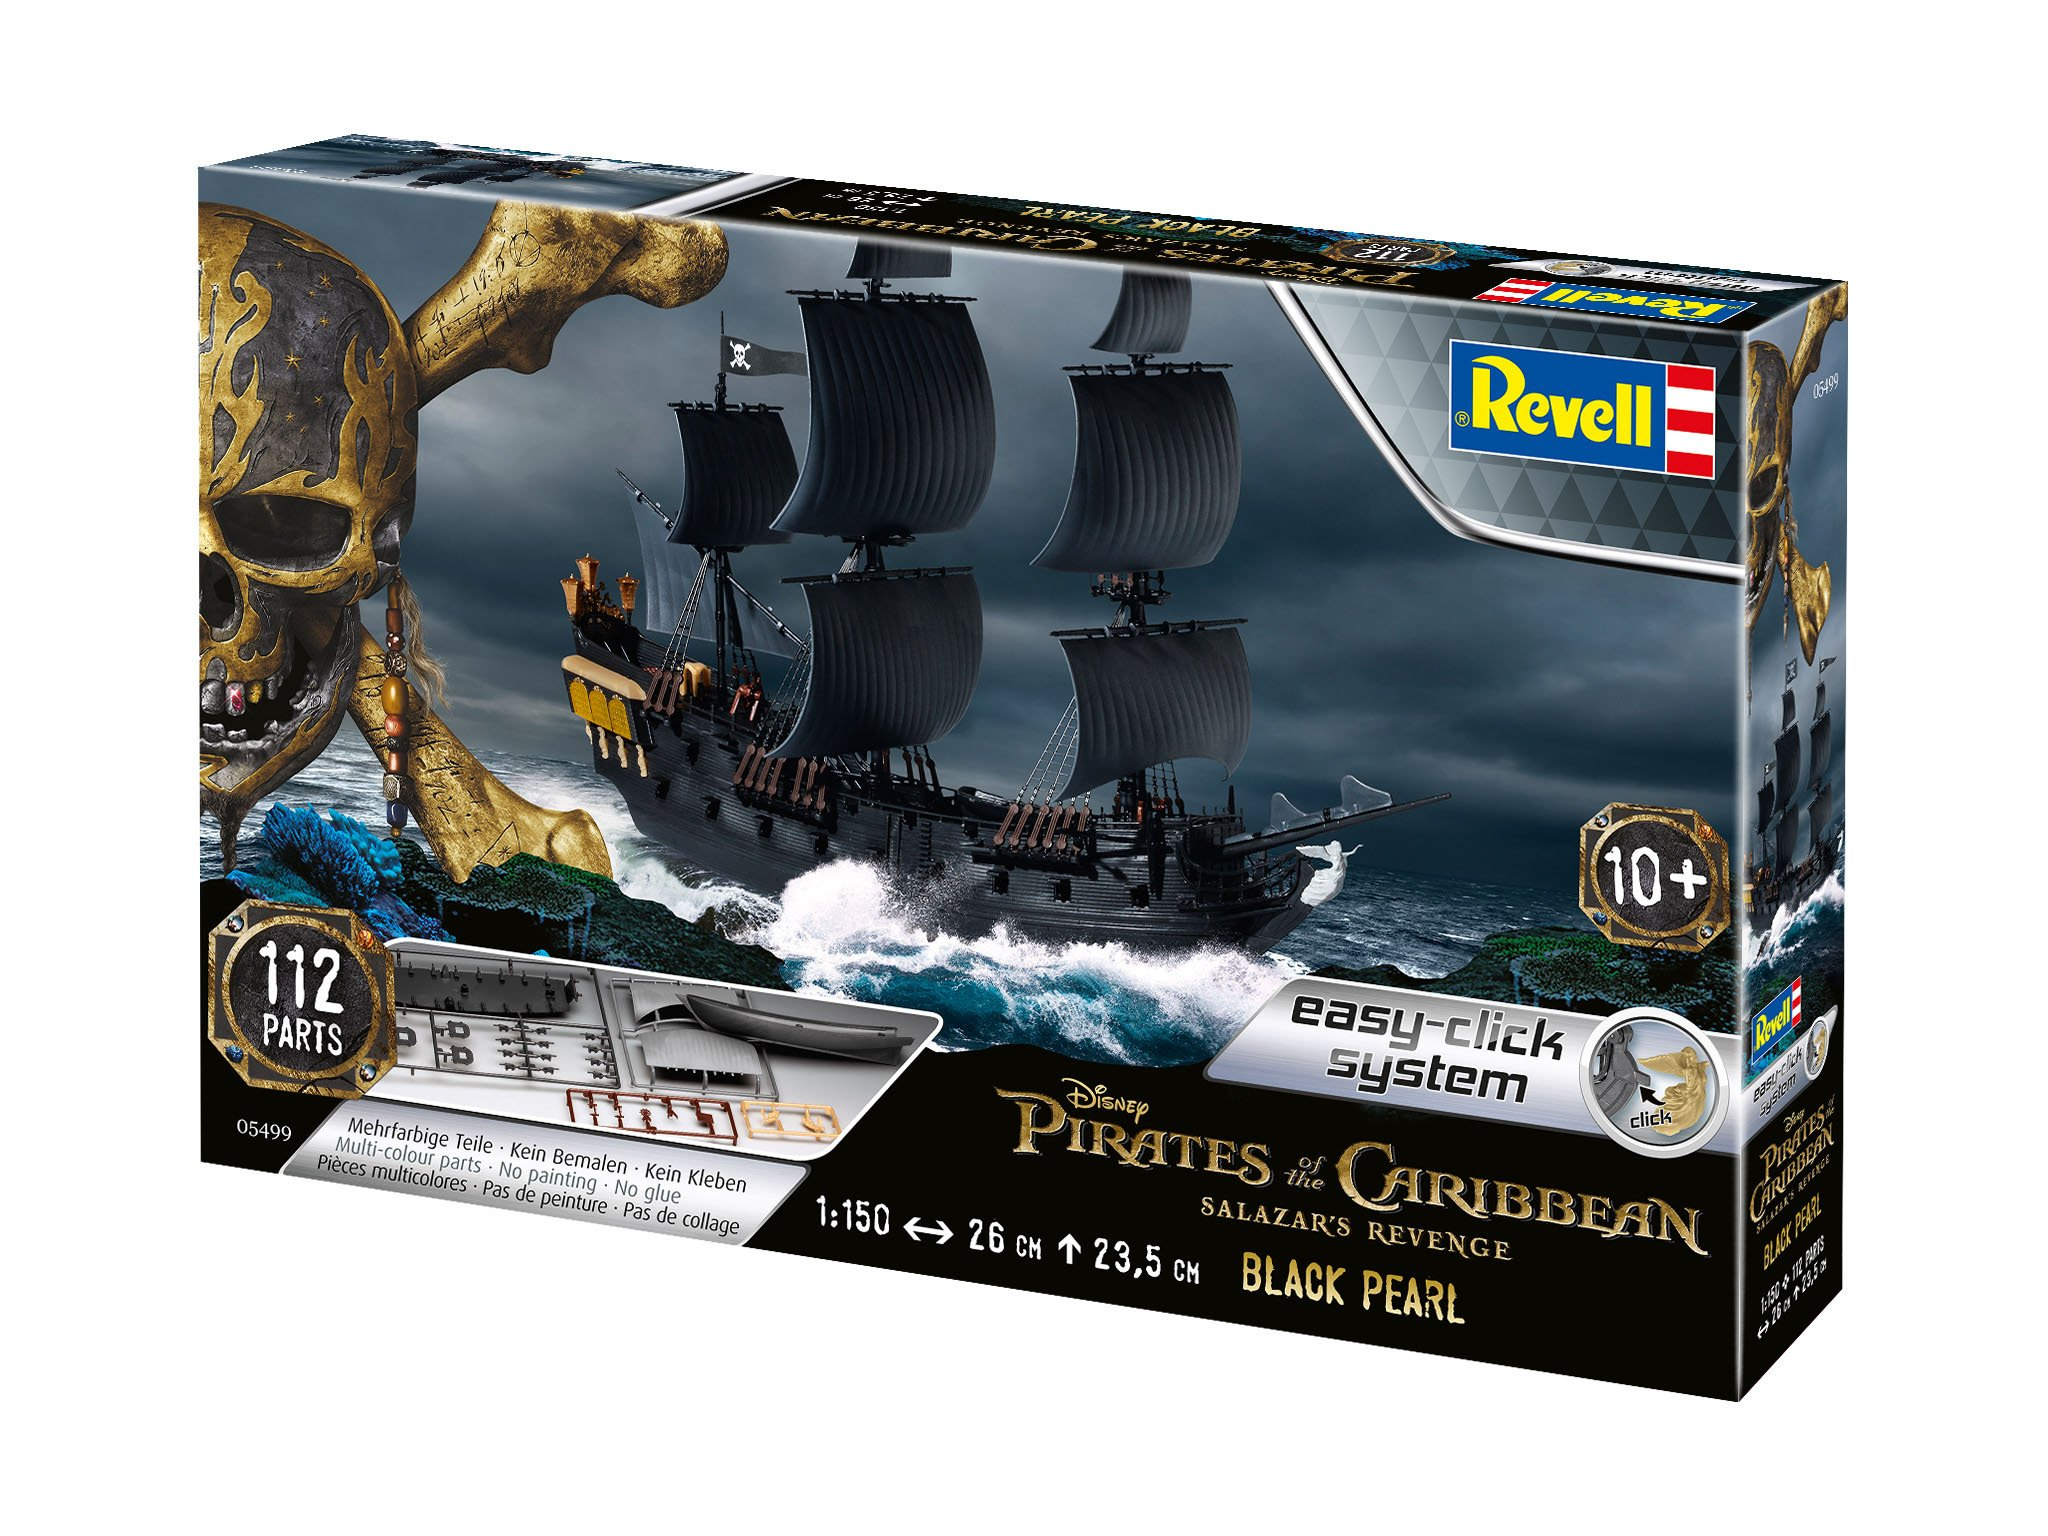 Revell 05499 - Pirates of The Caribbean - The Black Pearl 1:150 Scale